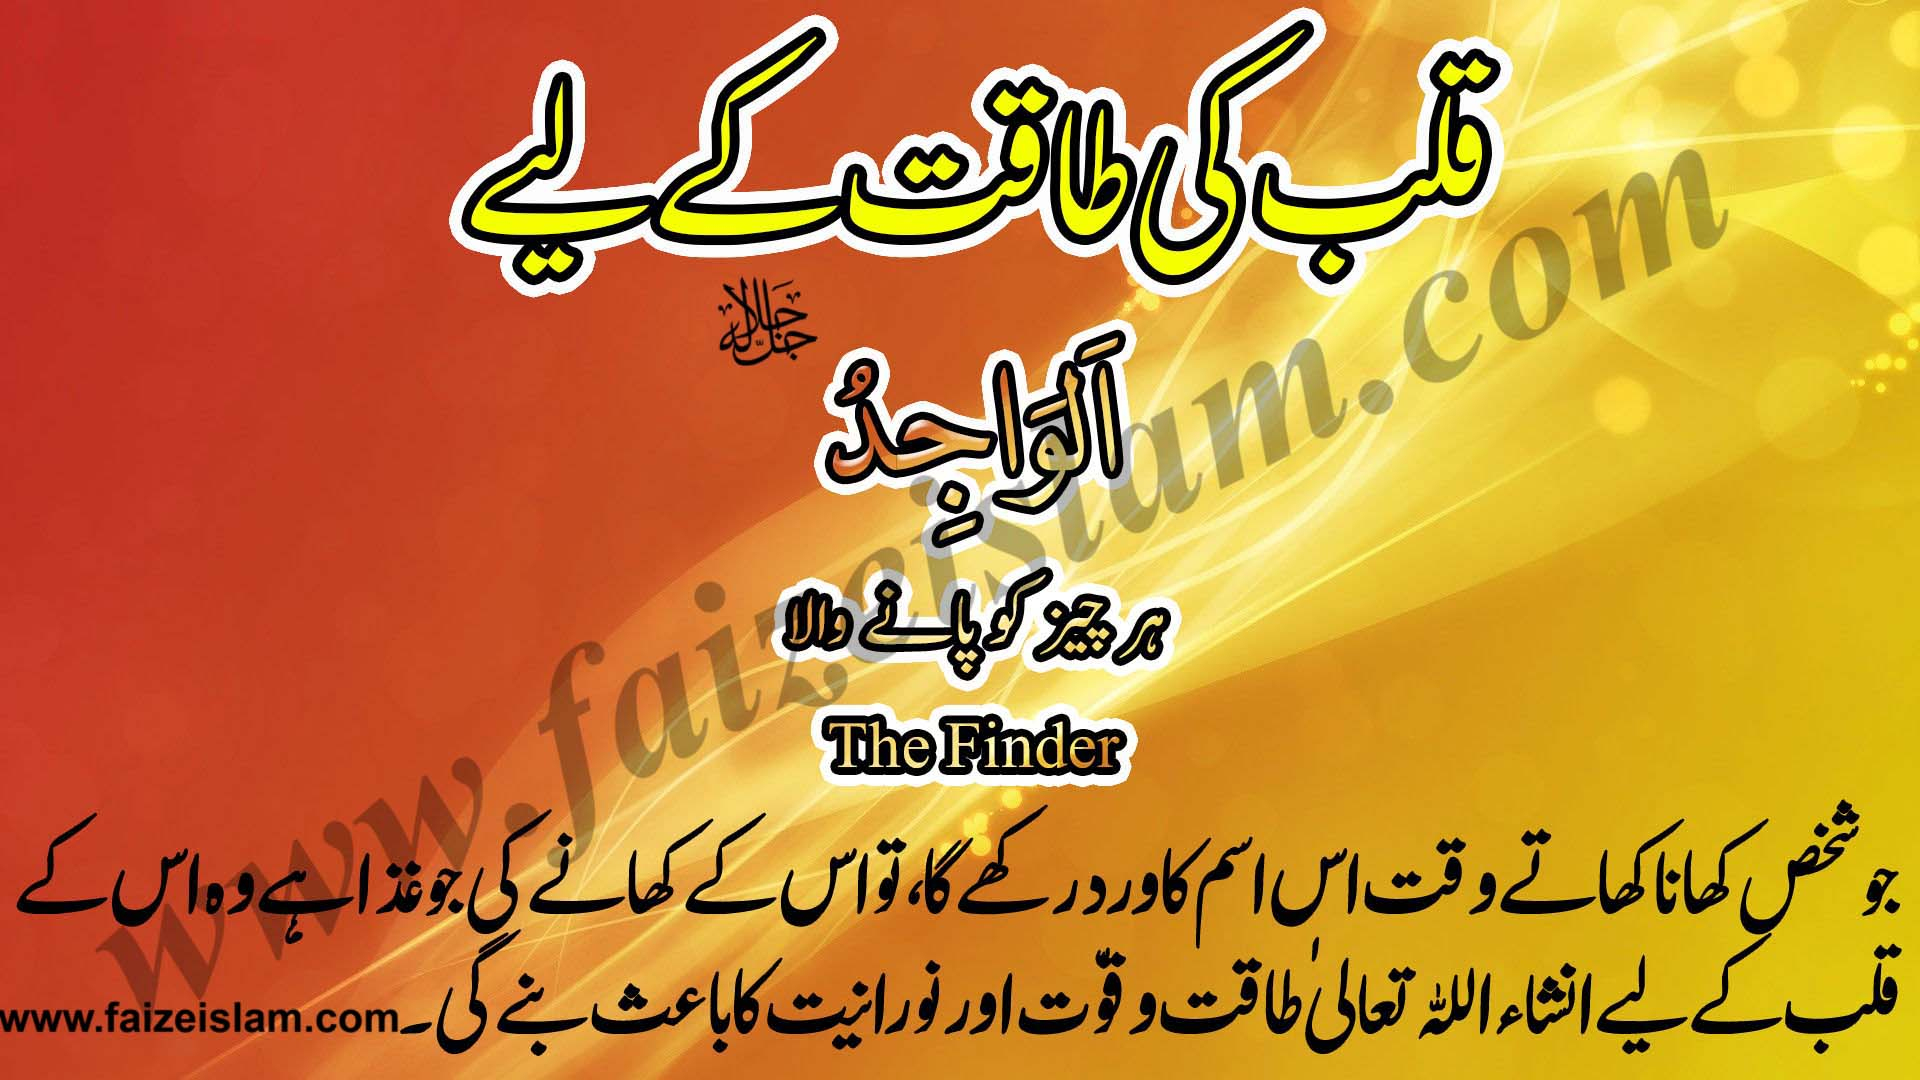 Photo of Qalb Ki Taqat Kay Liye Wazifa In Urdu